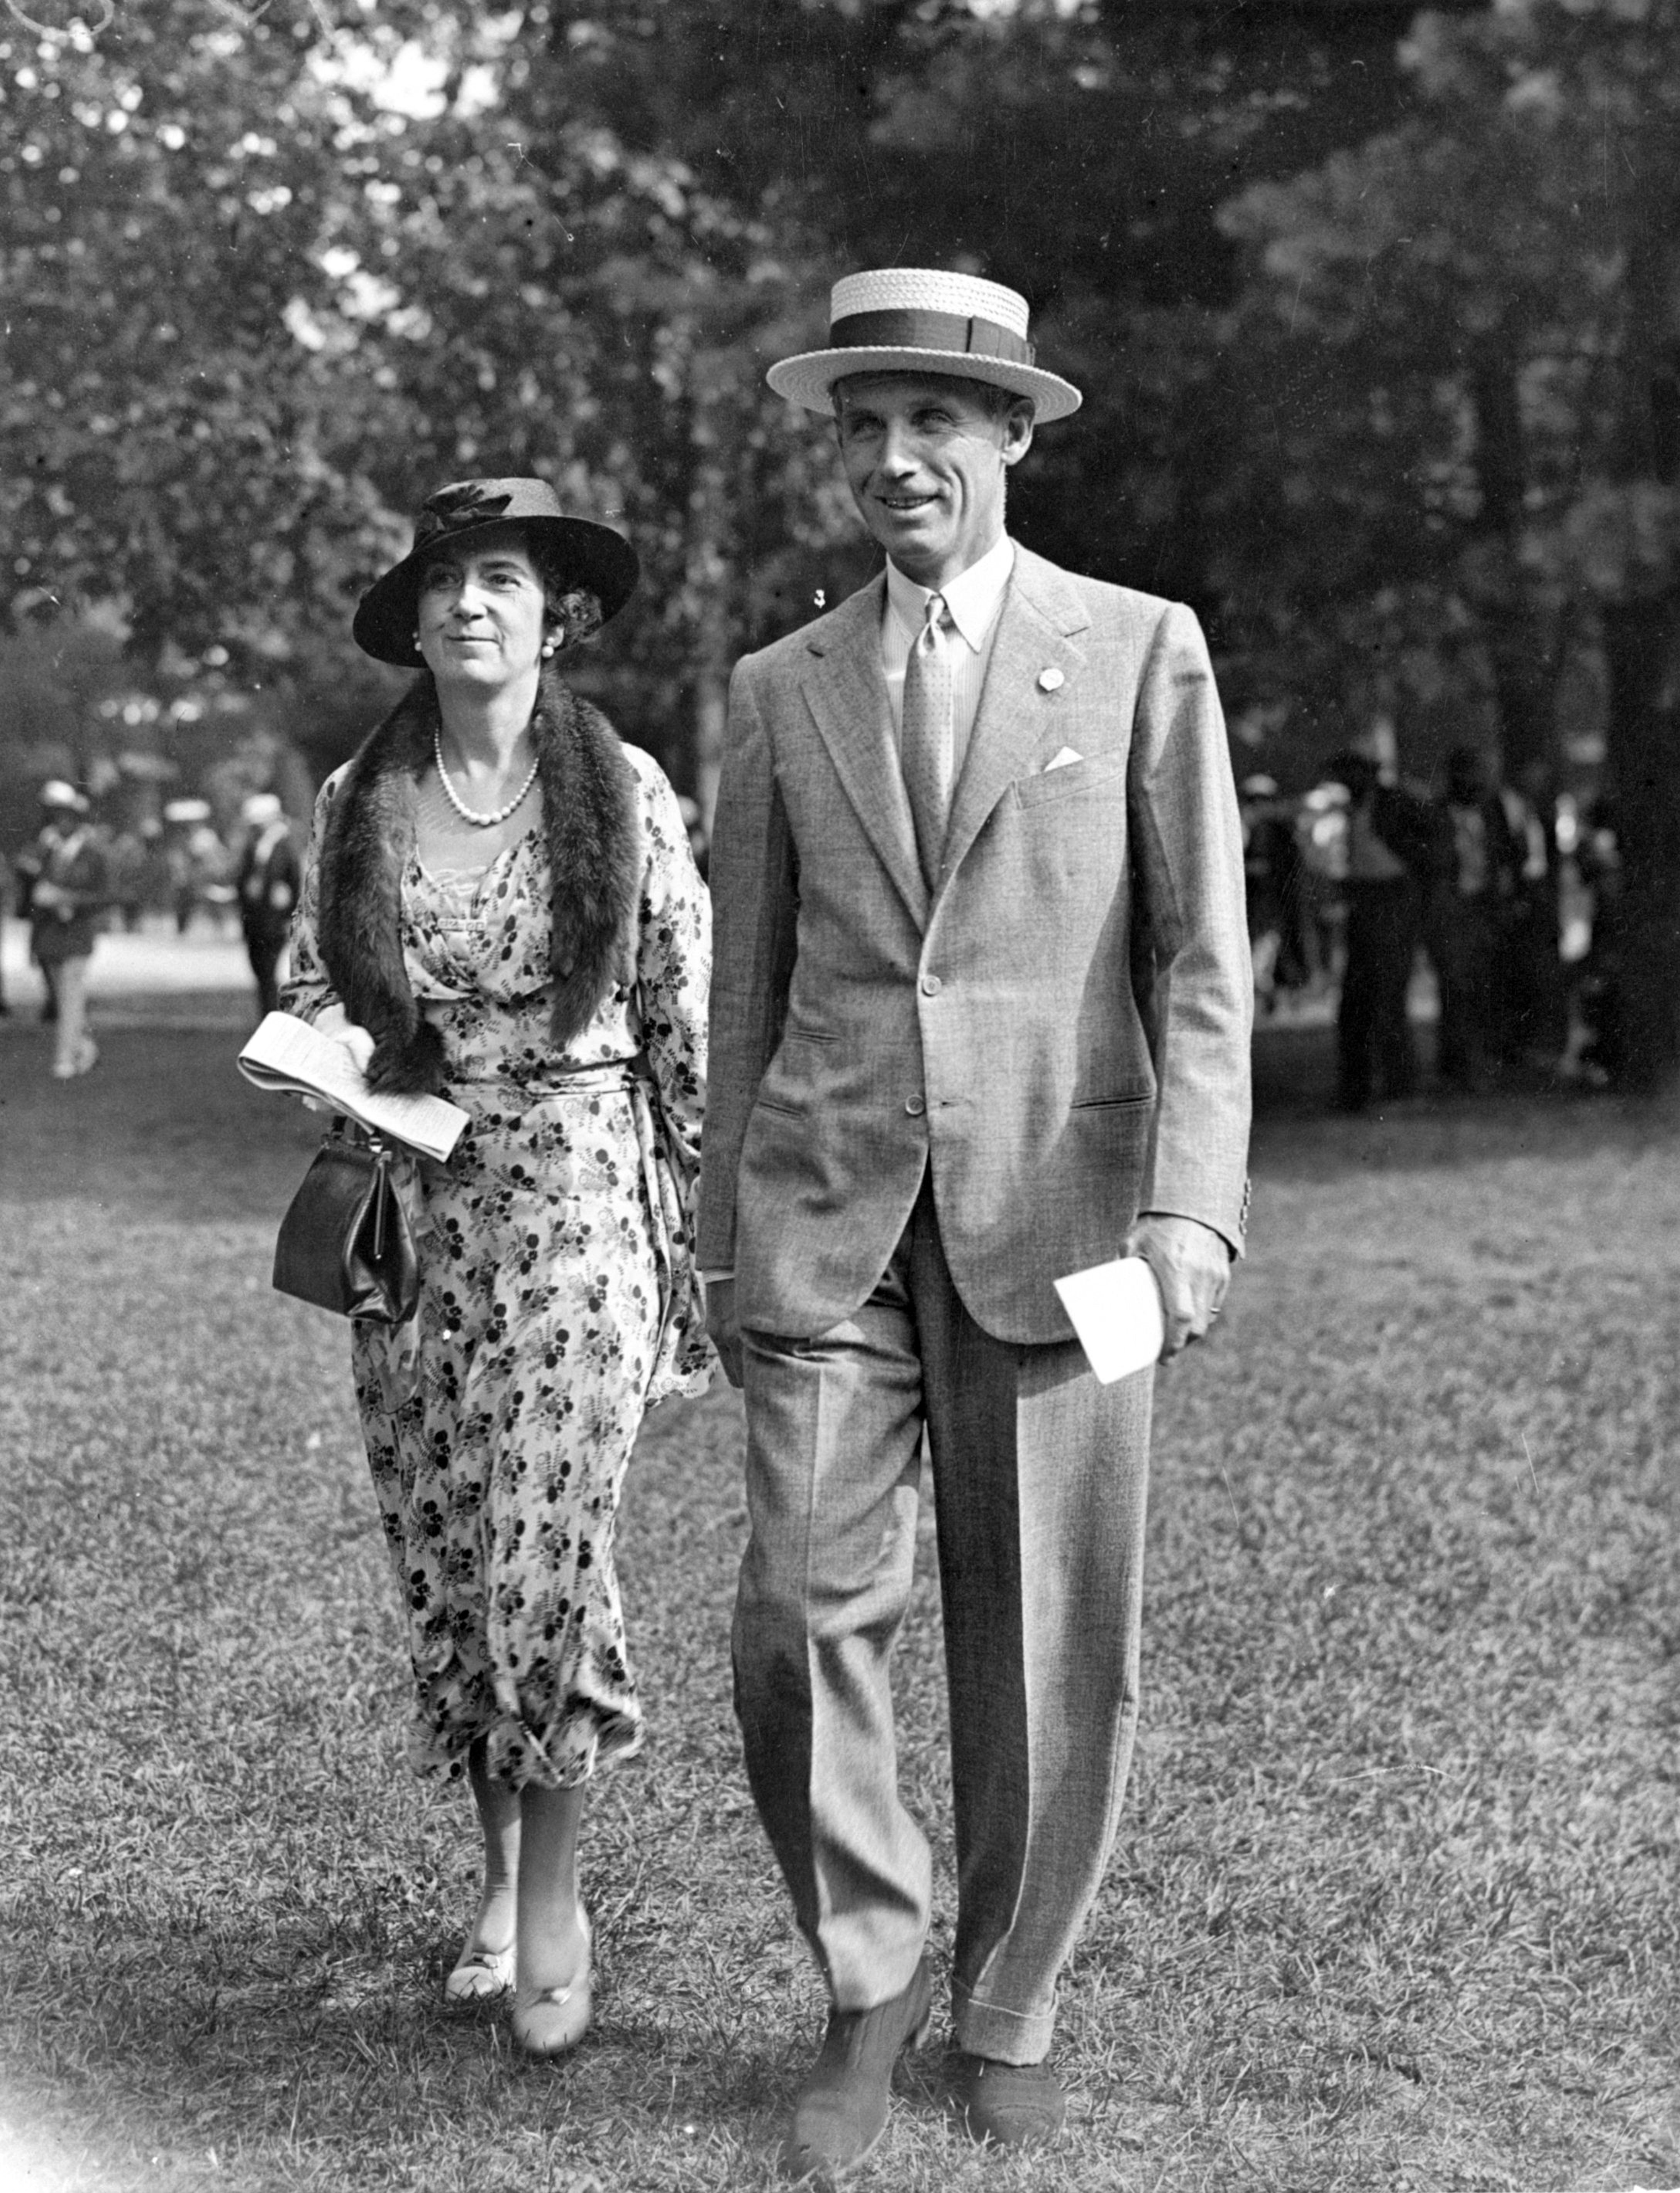 Mr. and Mrs. George D. Widener, Jr. at Belmont, 1933 (Keeneland Library Morgan Collection)